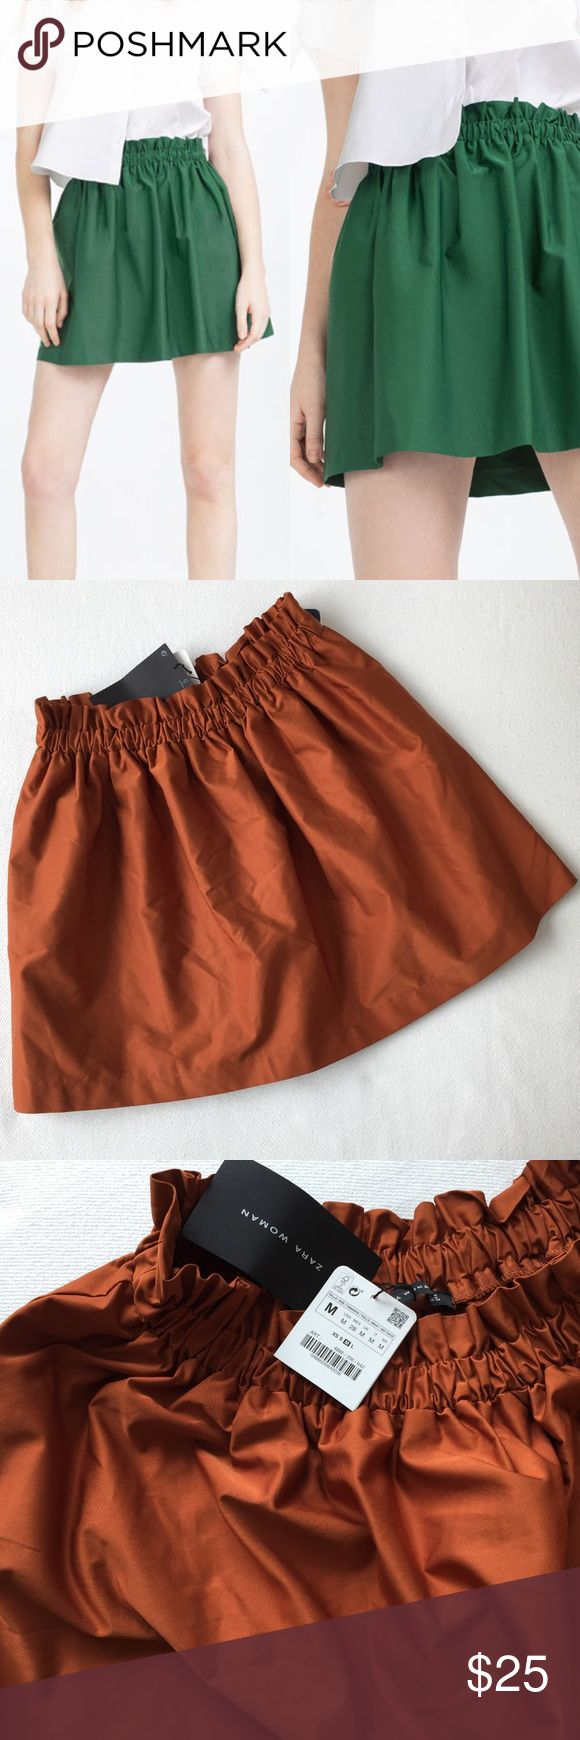 "Zara Women's Mini Skirt 🌷Please Read the description! Thanks!🌷  Brand new with tag Size: M Measurements: waist 13 3/4""(very stretchable), length 16 3/4"" Color: Camel Color may be slightly different bcz of lighting  🌷Price is FIRM unless bundled 🌷NO Trades         🌷NO Holds 🌷All sales are final Welcome product-related questions! You are responsible for your size. Zara Skirts Mini"